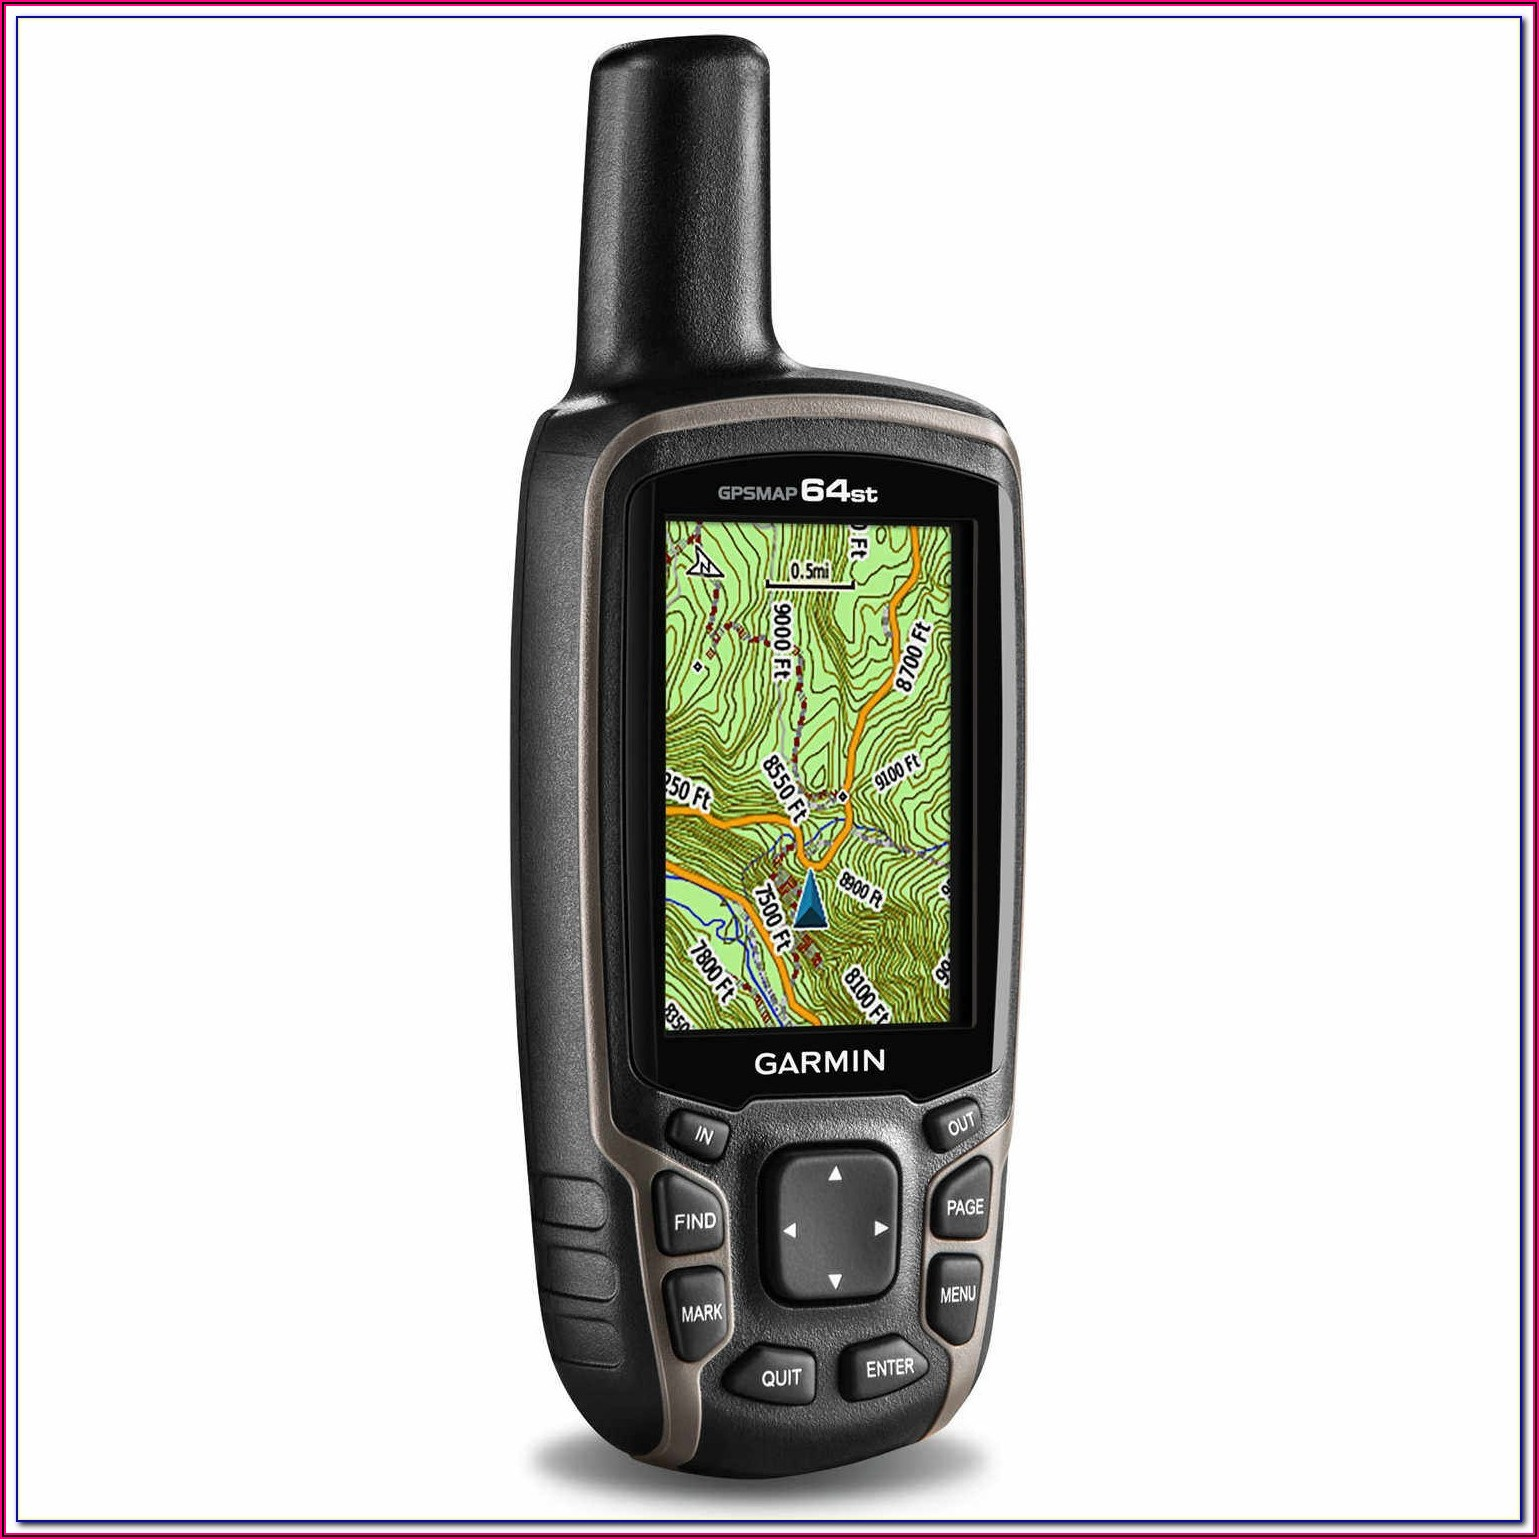 Garmin 64st Road Maps